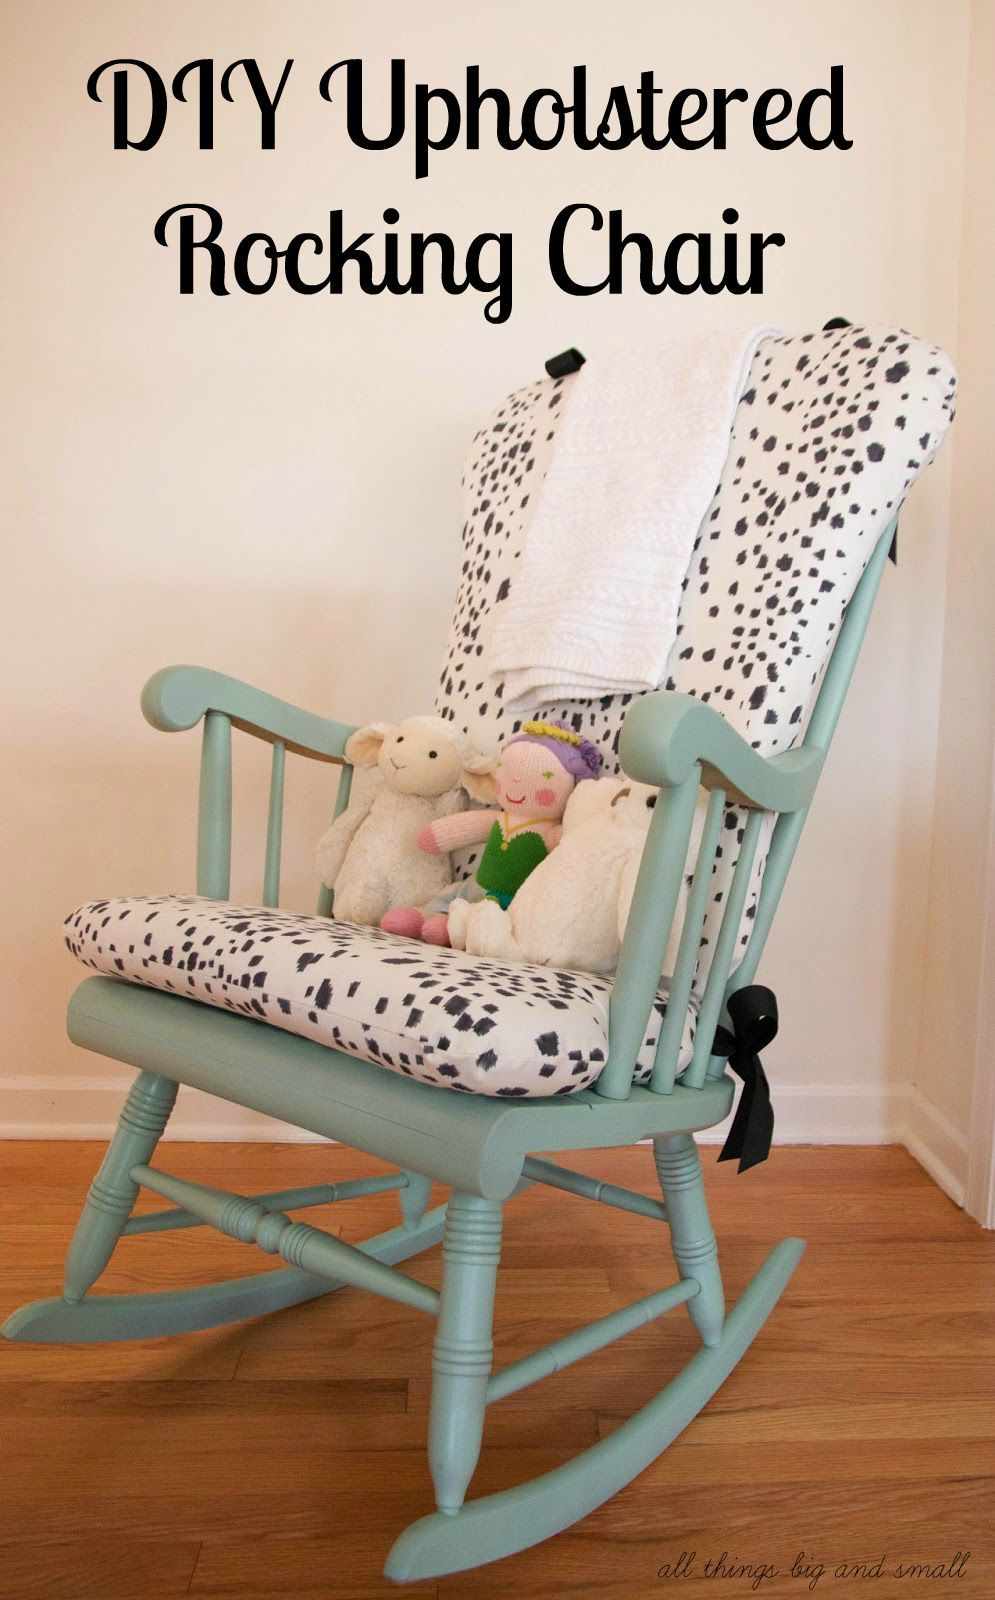 A Step By Custom Diy Upholstered Rocking Chair Tutorial That Only Cost 100 The Fabric Looks Just Like Brunschwig Fils Version